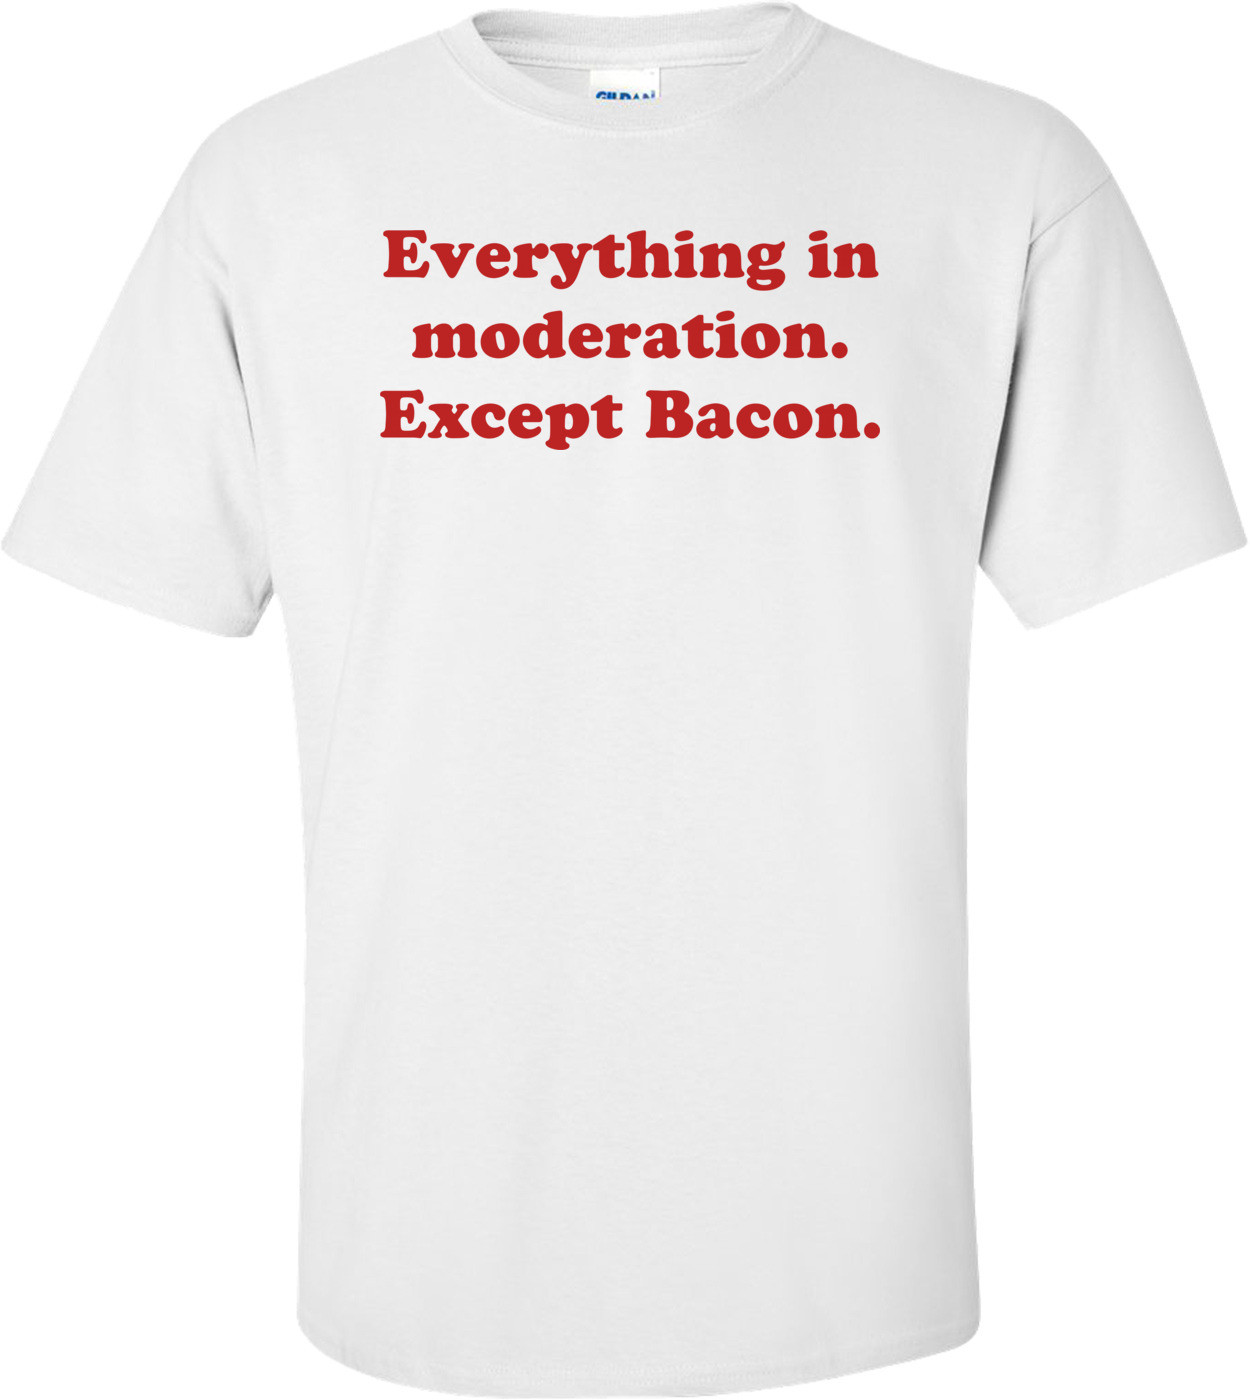 Everything in moderation. Except Bacon. Shirt